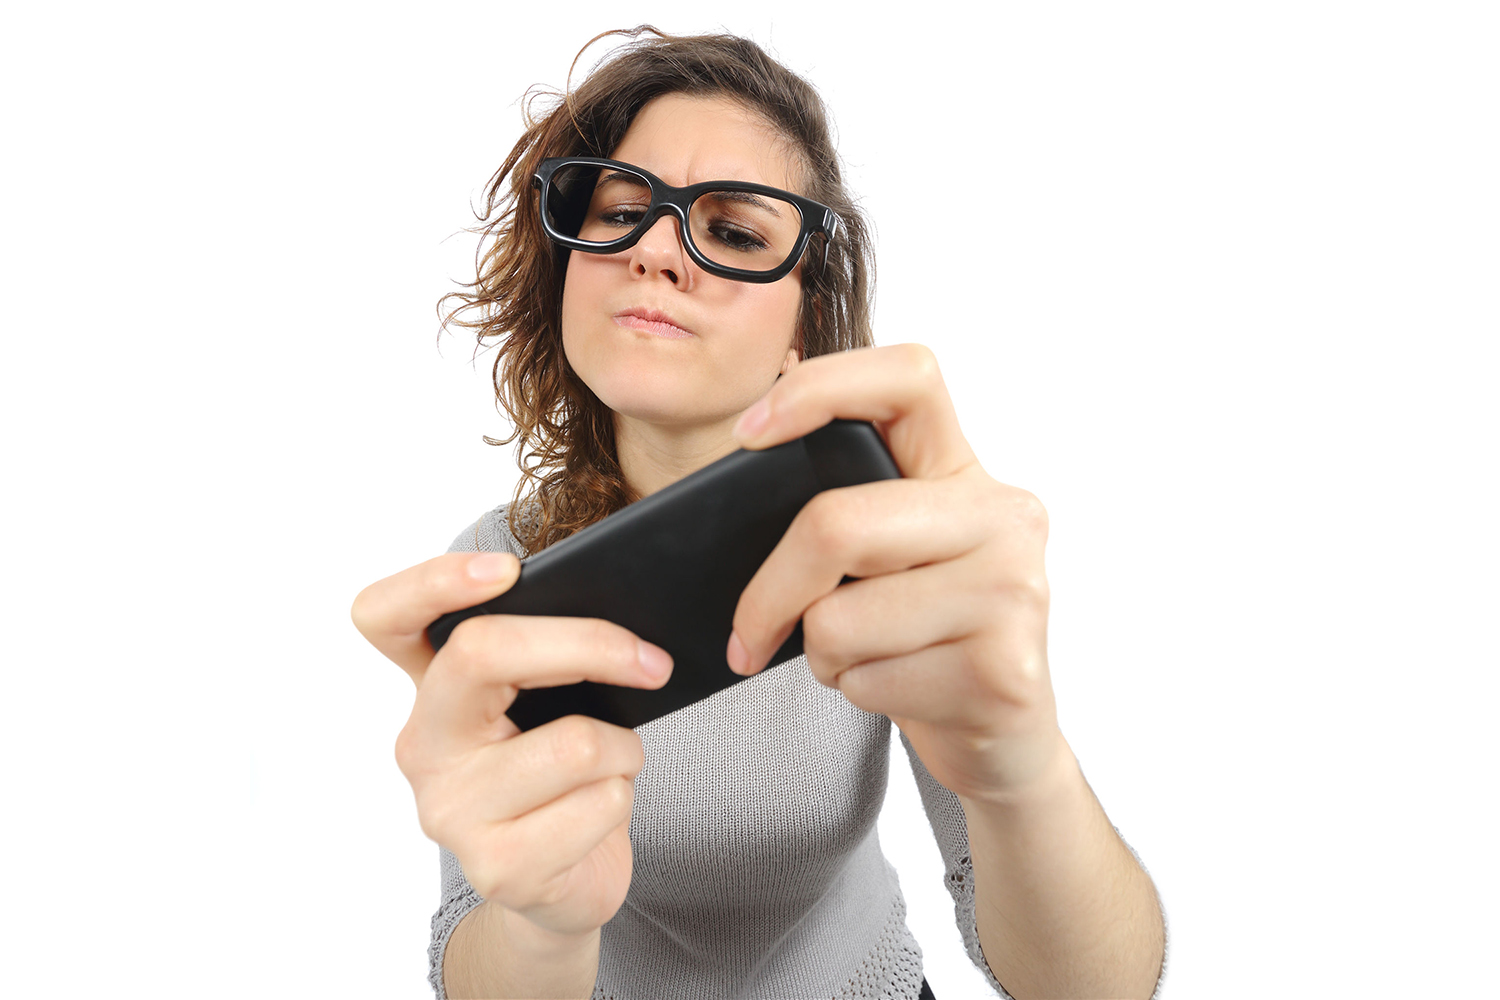 flirting games to play through text messages today online video